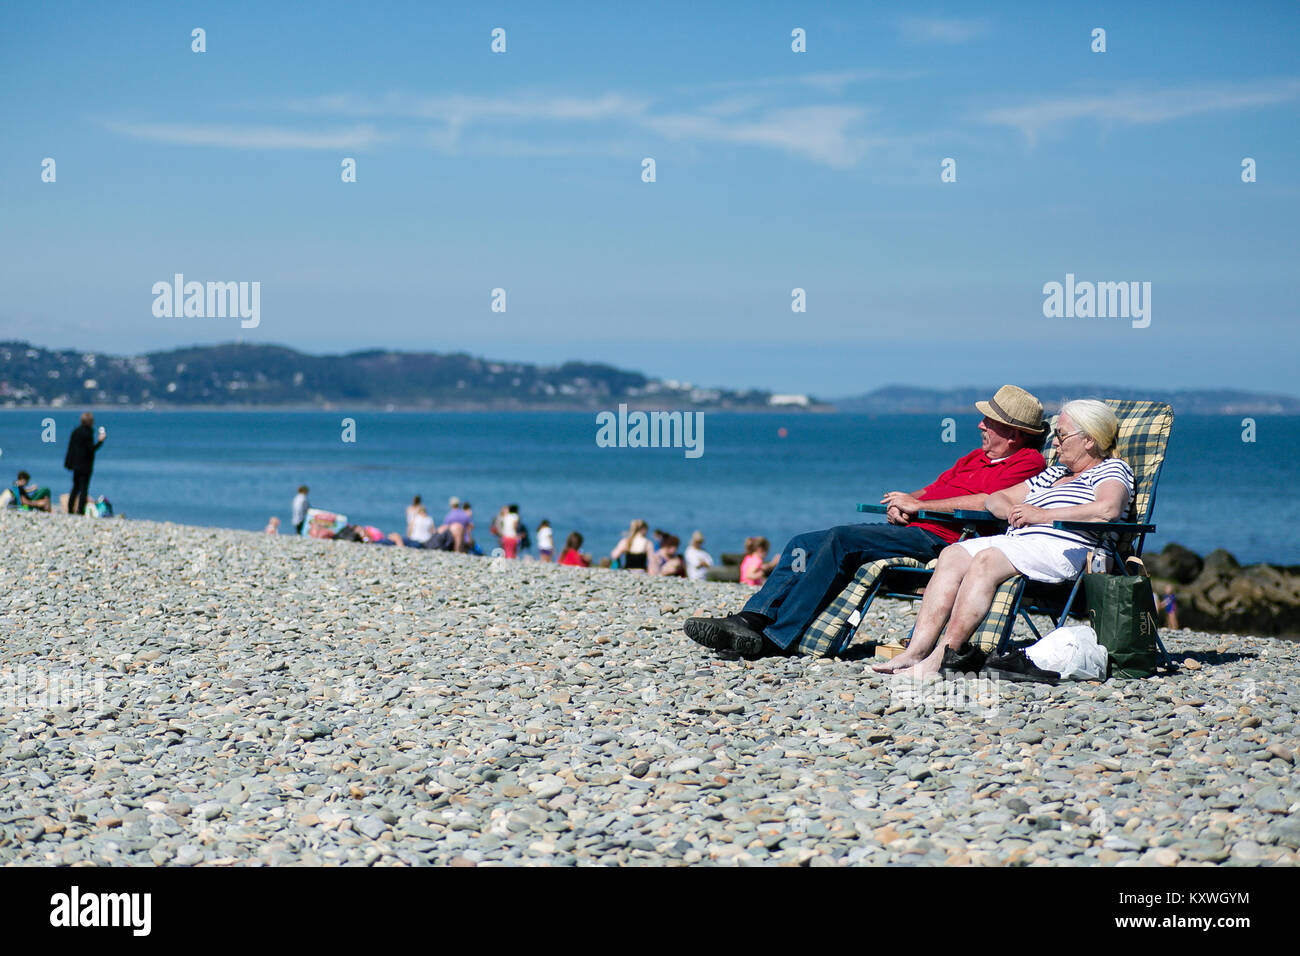 Elderly couple man and woman relaxing on a sunny summer day on a stone beach in Bray, County Wicklow, Ireland - Stock Image